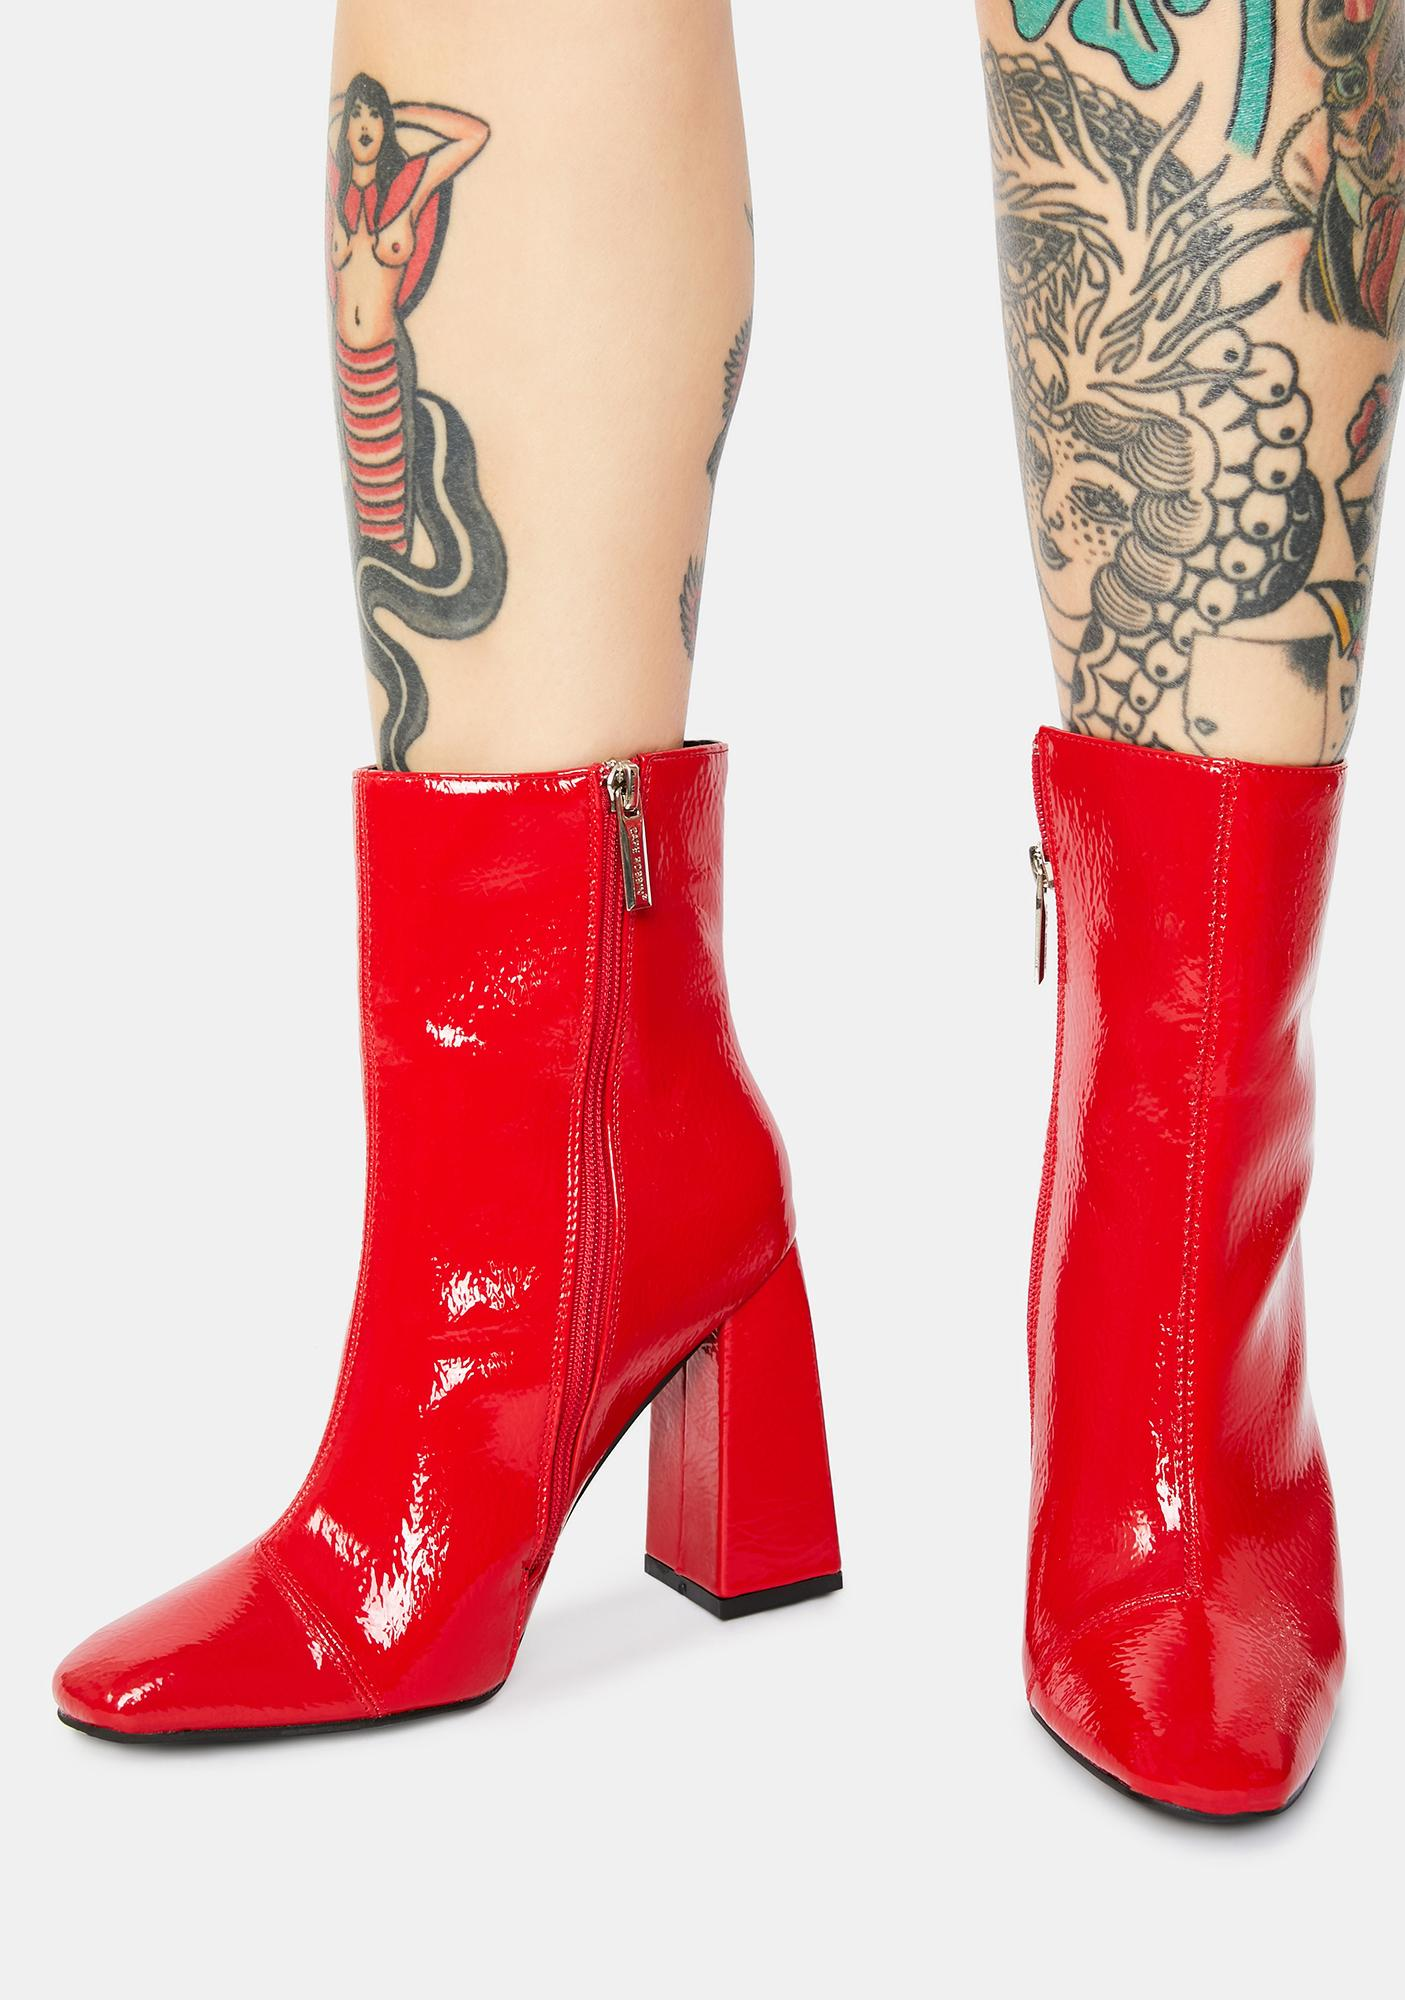 Patent Spicy Rude Attitude Ankle Boots